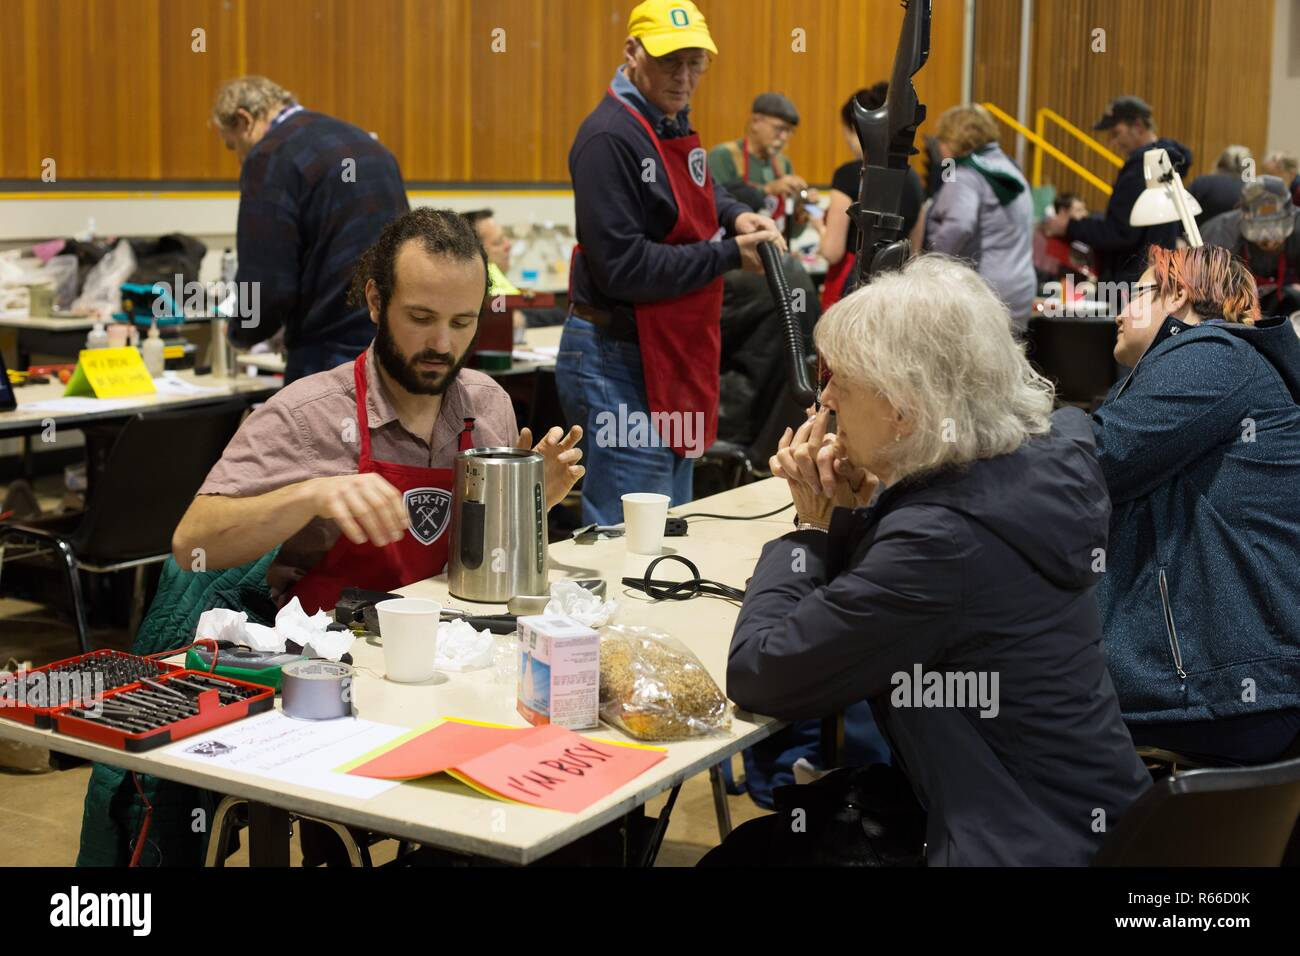 A volunteer fixer repairs a coffee maker at the Fix It Fair in Eugene, Oregon, USA. - Stock Image